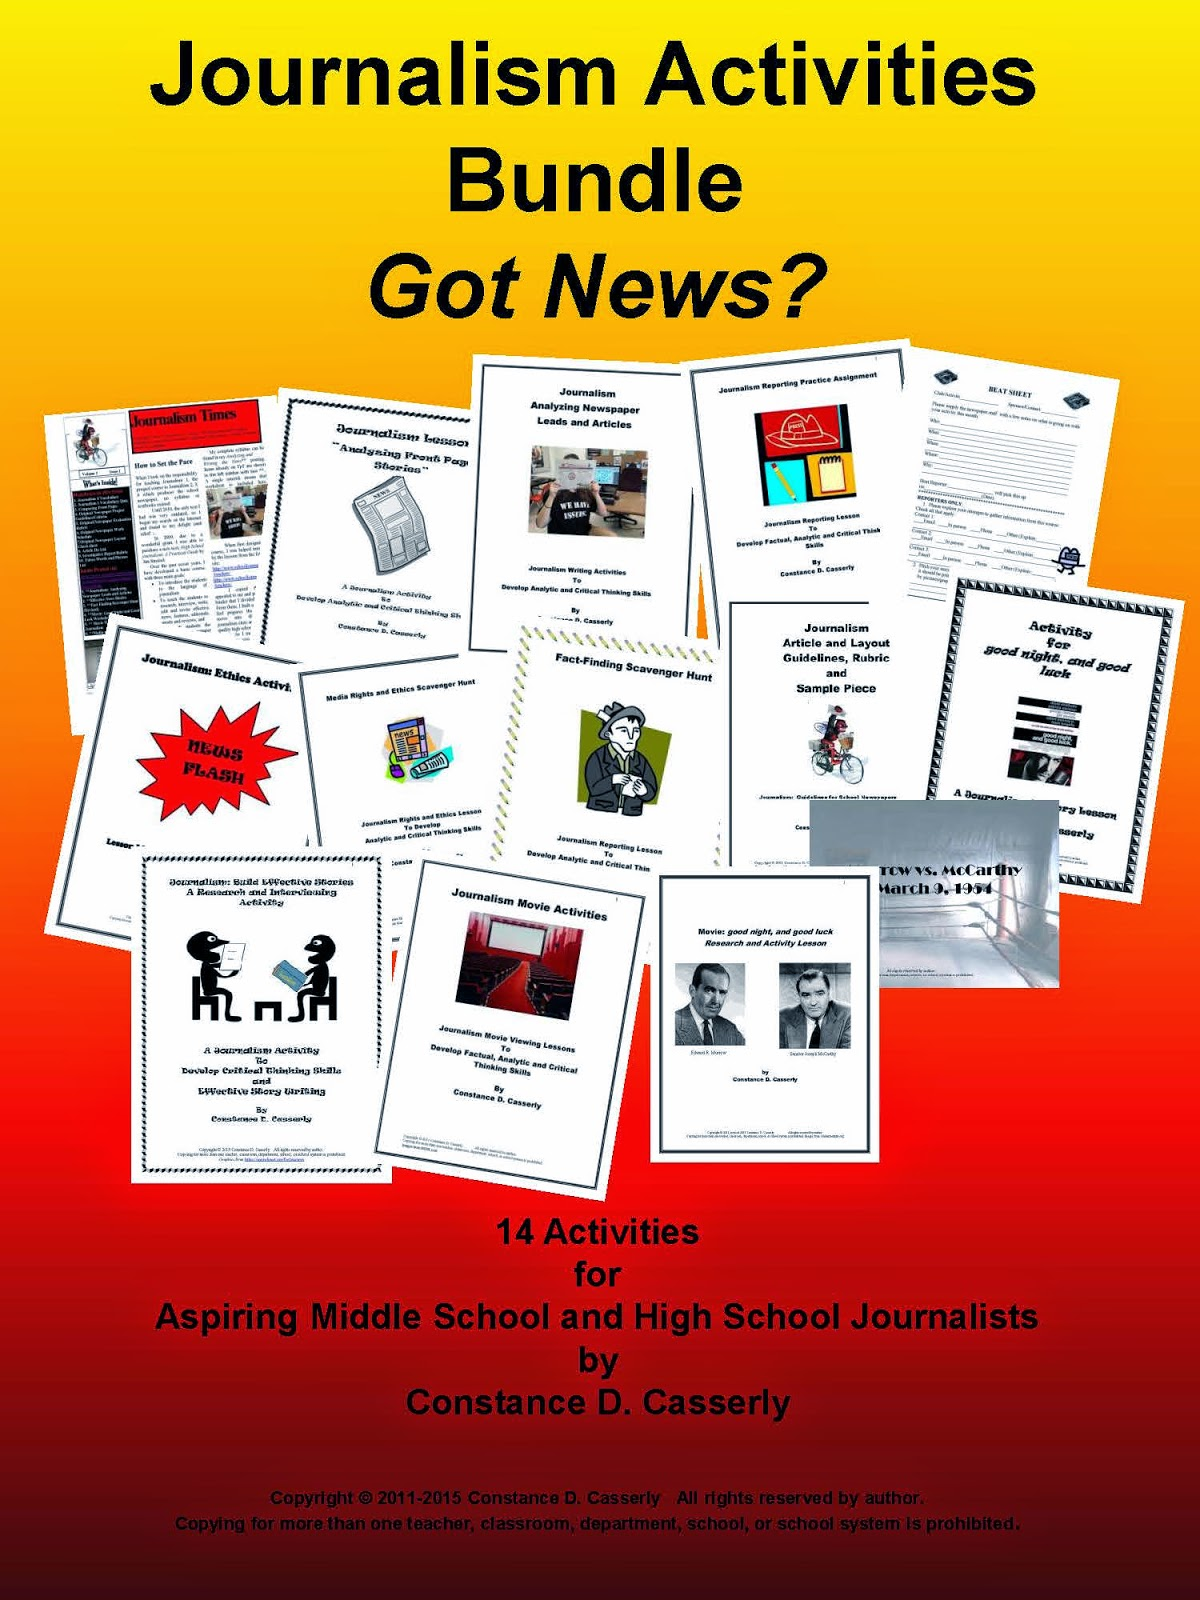 Journalism Activities Bundle cover